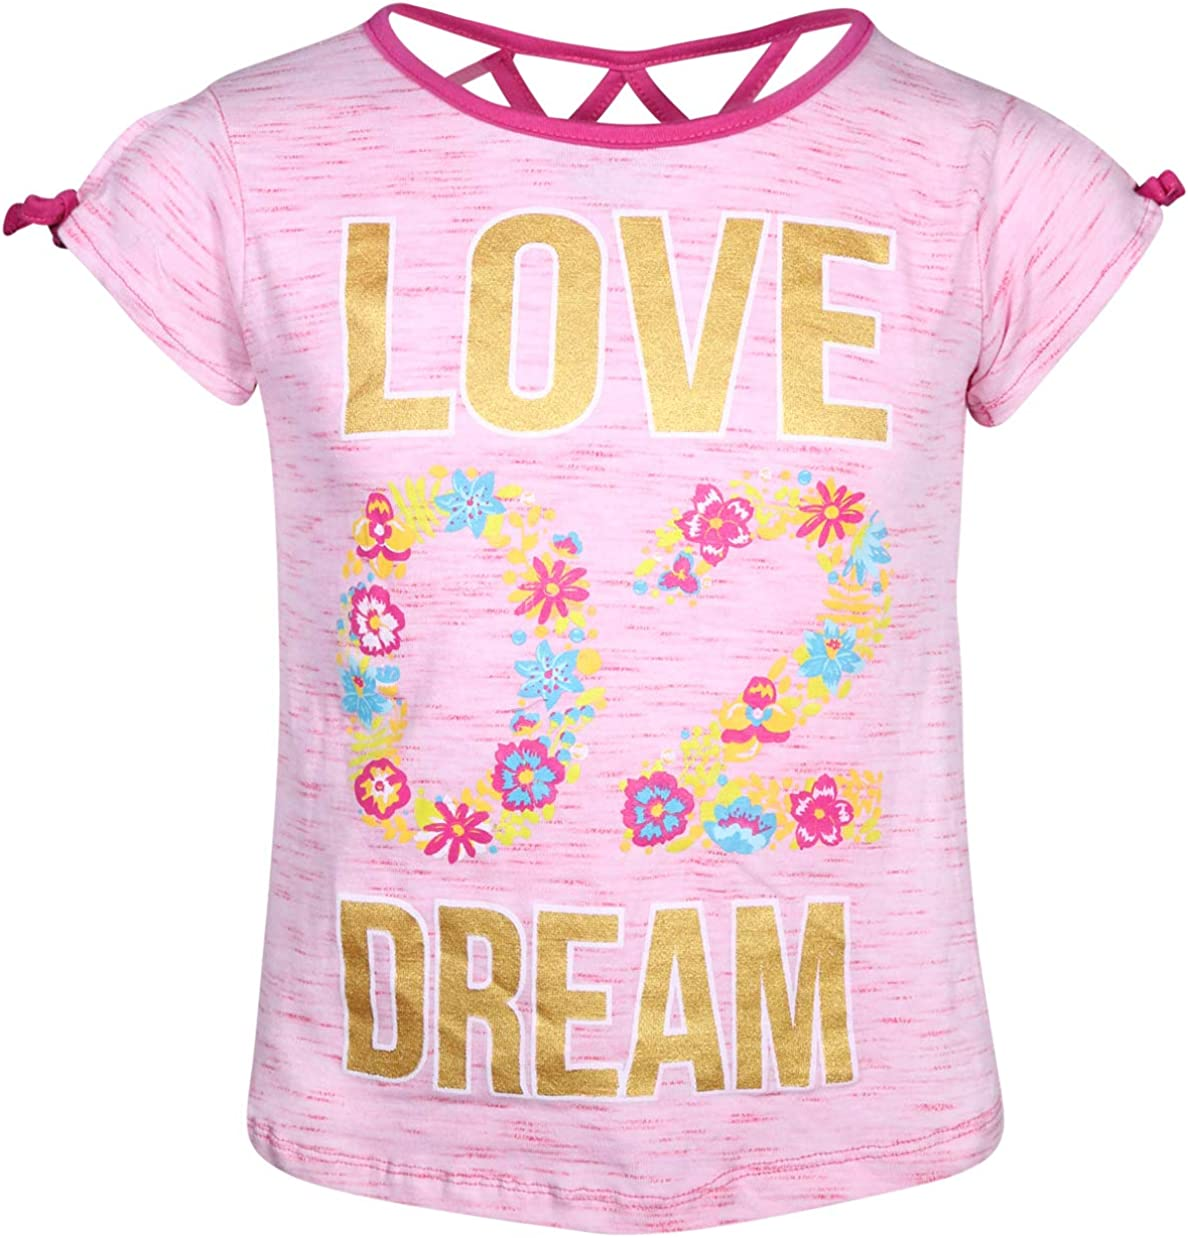 Real Love Girls 4-Piece Summer Short Set with Fun Prints